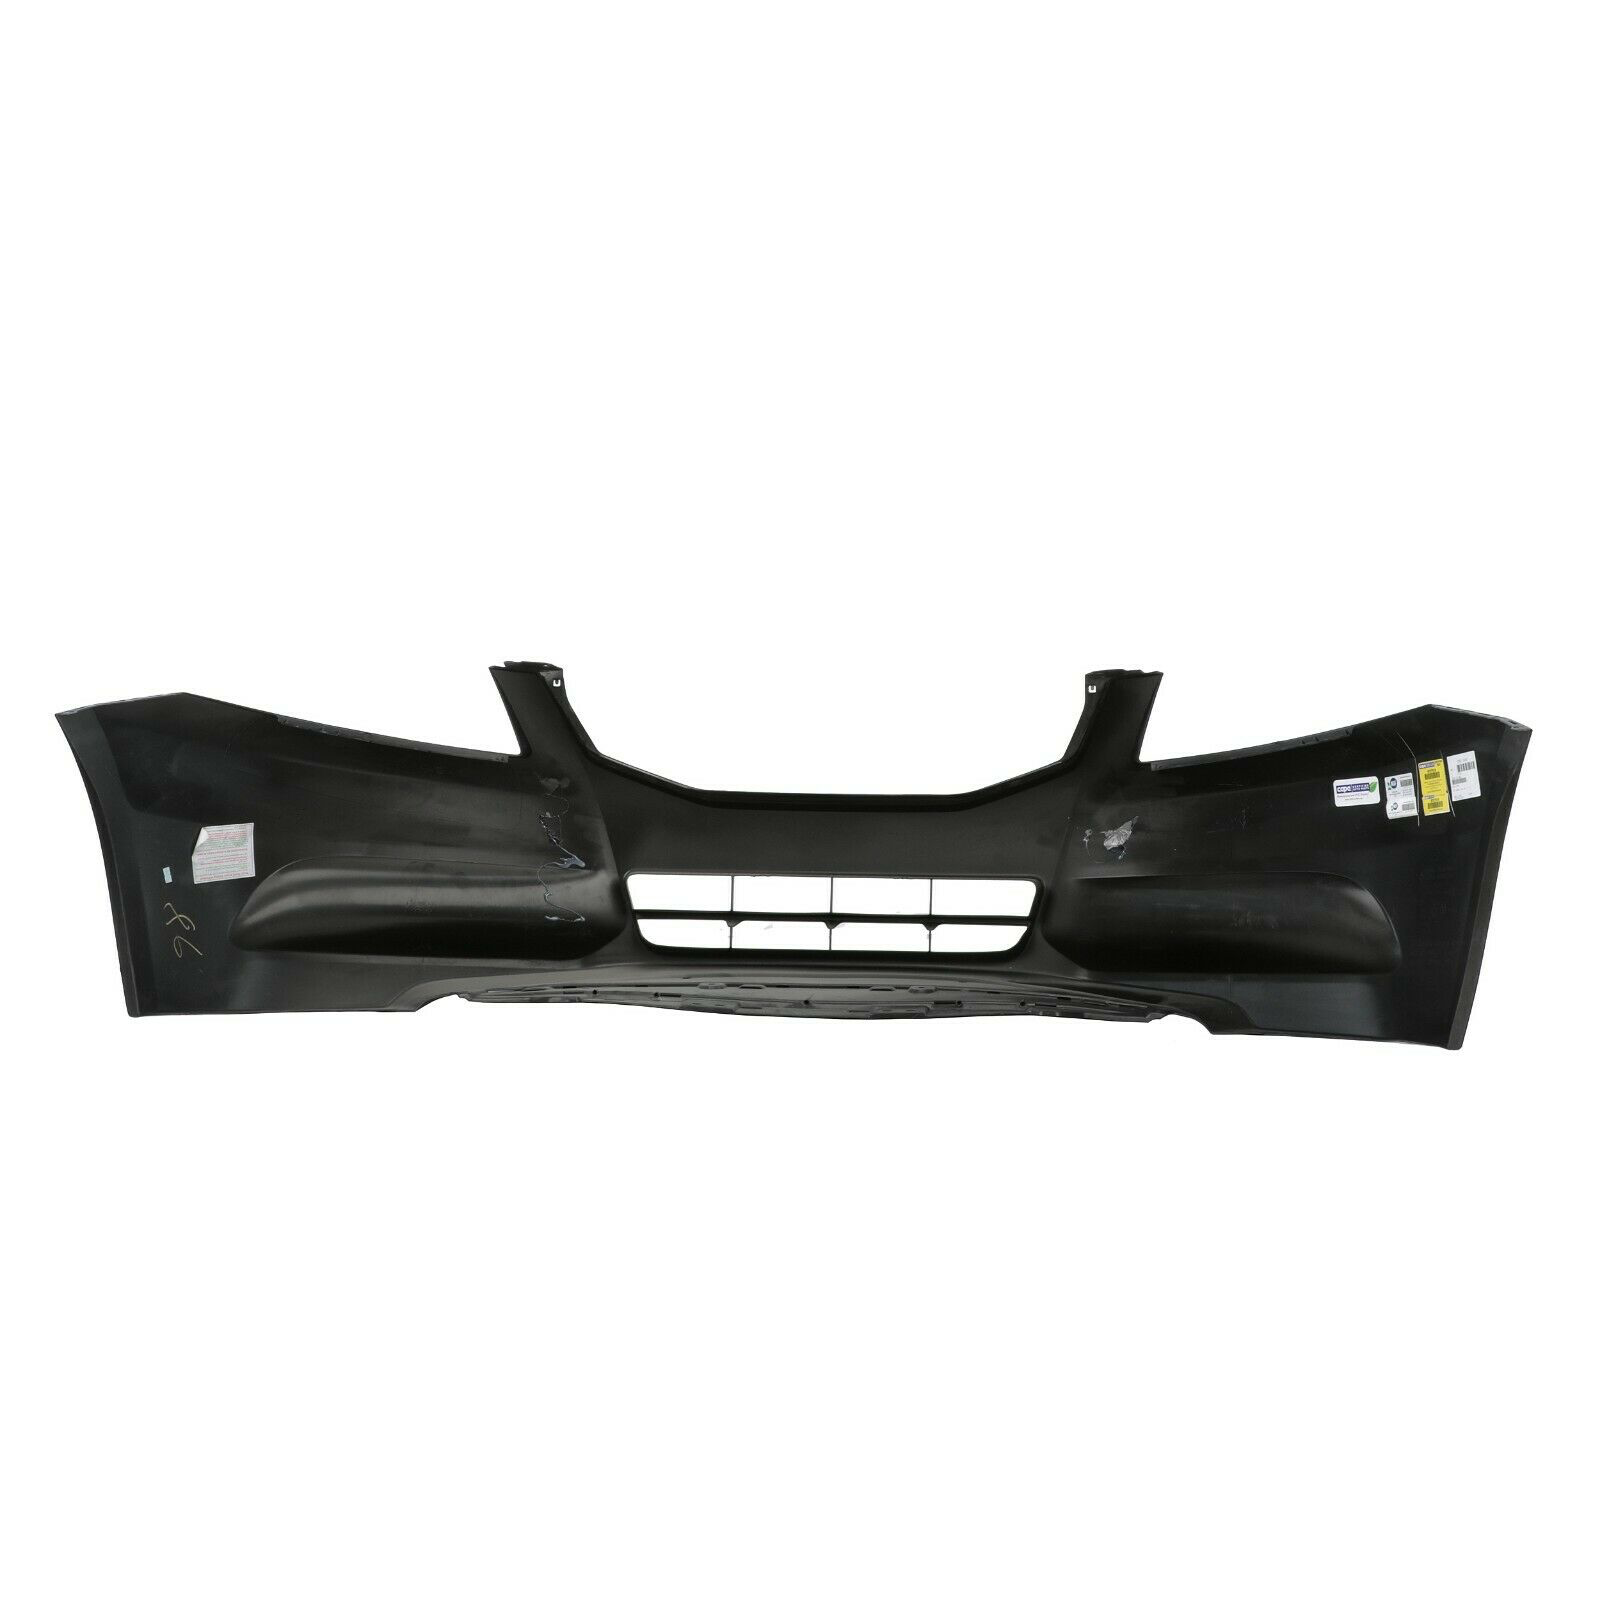 2011-2012 Honda Accord Sedan 4cyl no fog Front Bumper Painted to Match